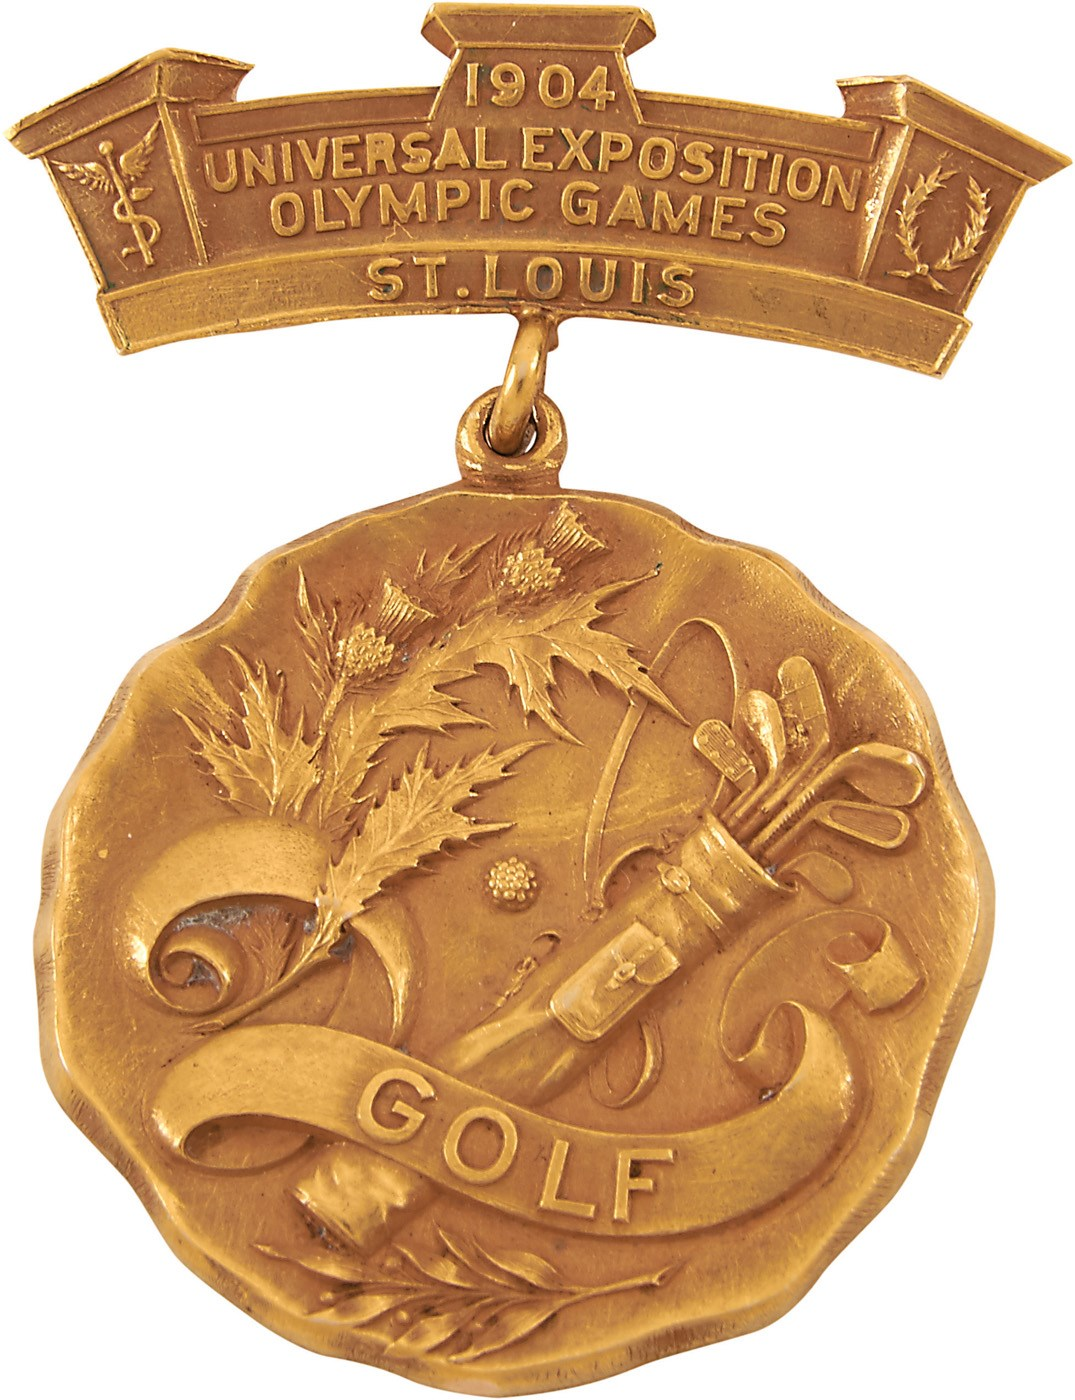 1904 Olympic Gold Medal for Golf Presented to Chandler Egan